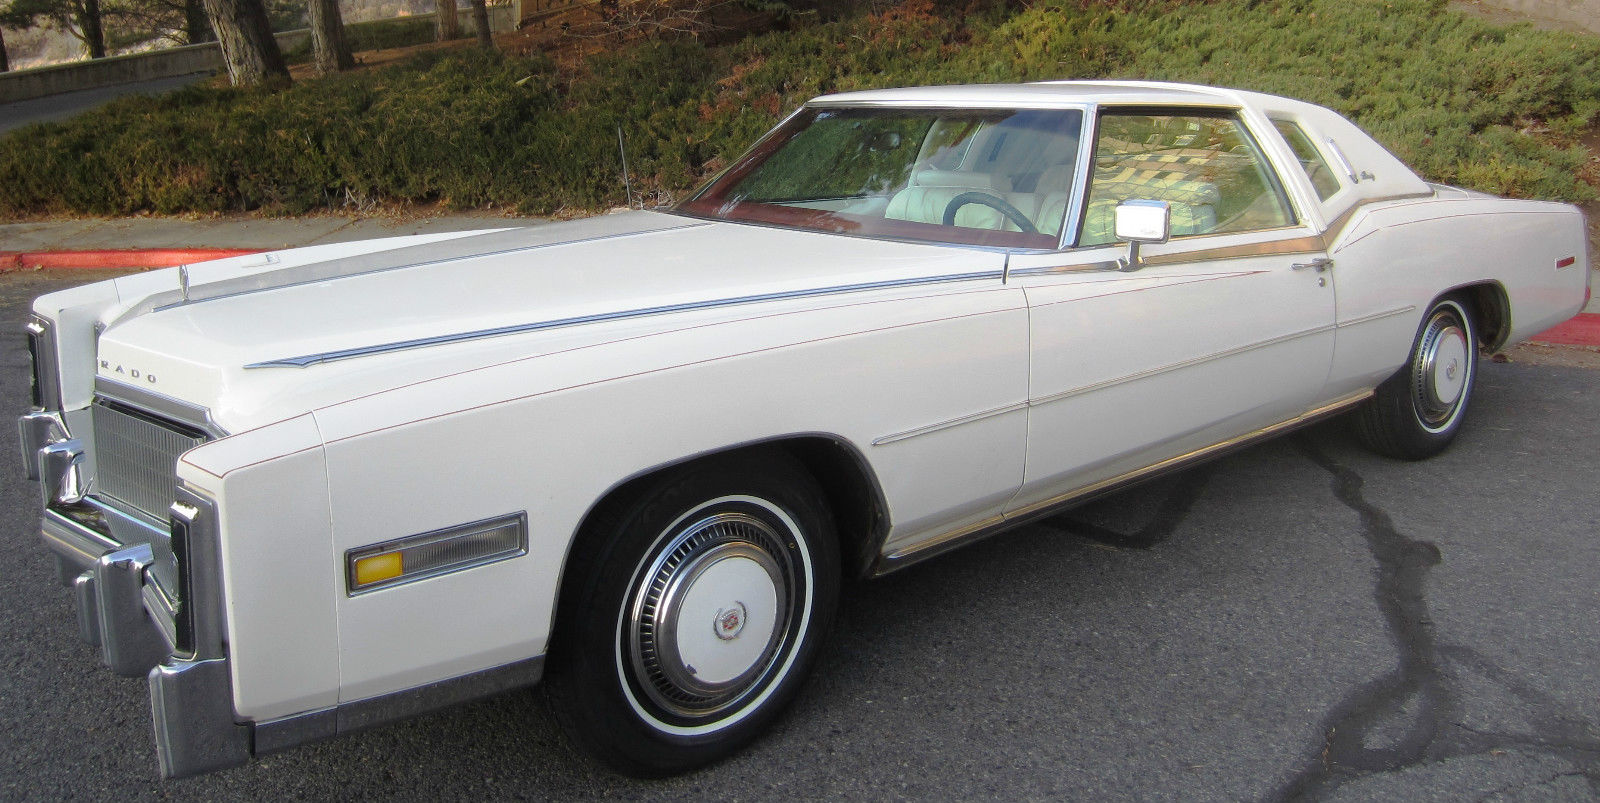 mileage map of usa with 3994 77 Cadillac Eldorado Biarritz 112k Original Miles All Original on 8296 1981 Jeep Cj5 Full Restoration V8 4 Speed Classic 4x4 together with 29030 1967 Ford Mustang Convertiblev8 Autopsgt Wheels 039c039 Code Runs And Drives additionally 14001 1974 Dodge Charger additionally Urbee 2 furthermore 67443 1966 Ford Galaxie 500 Xl Hardtop Fastback 390  plete Frame Off Restoration.